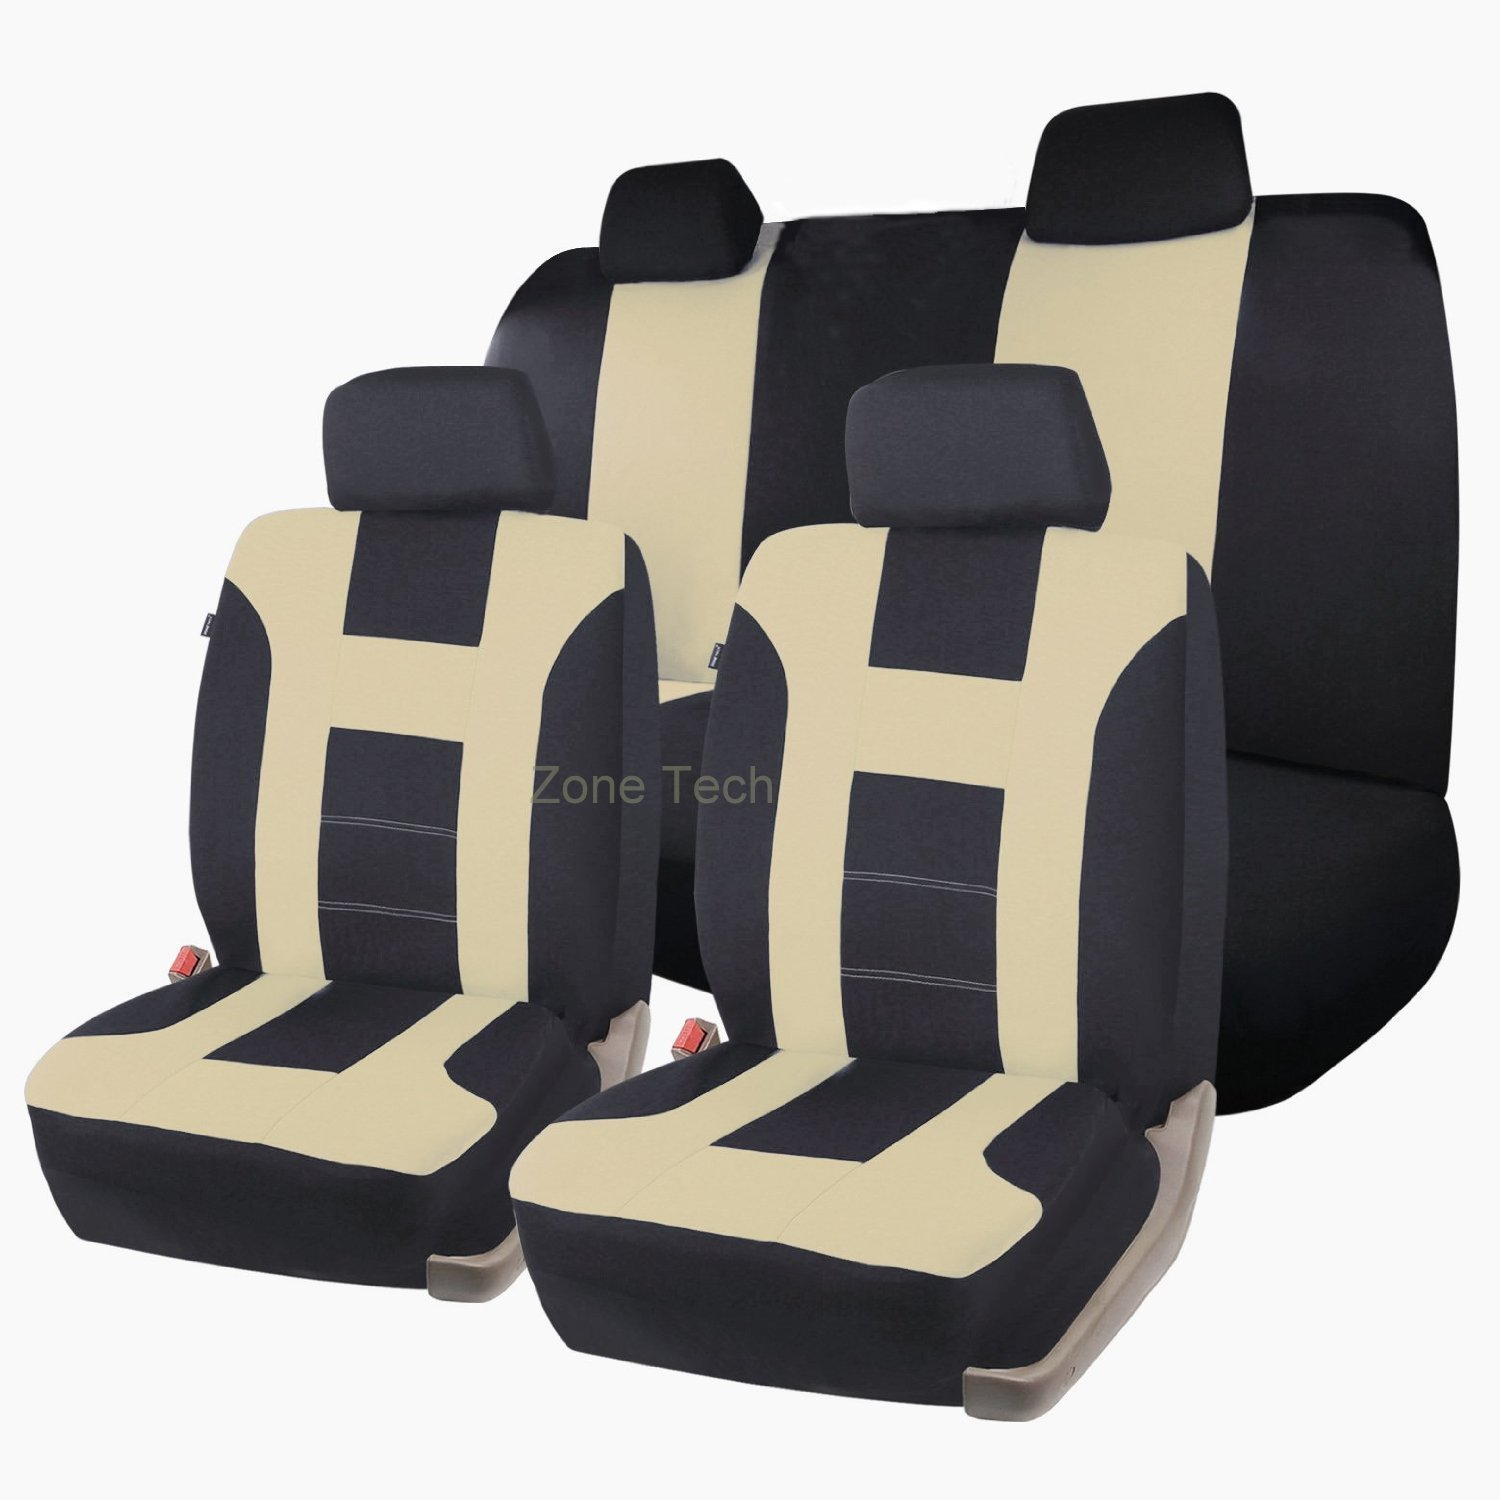 Zone Tech Universal Full Set of Car Seat Covers Racing Style- Beige/ Black